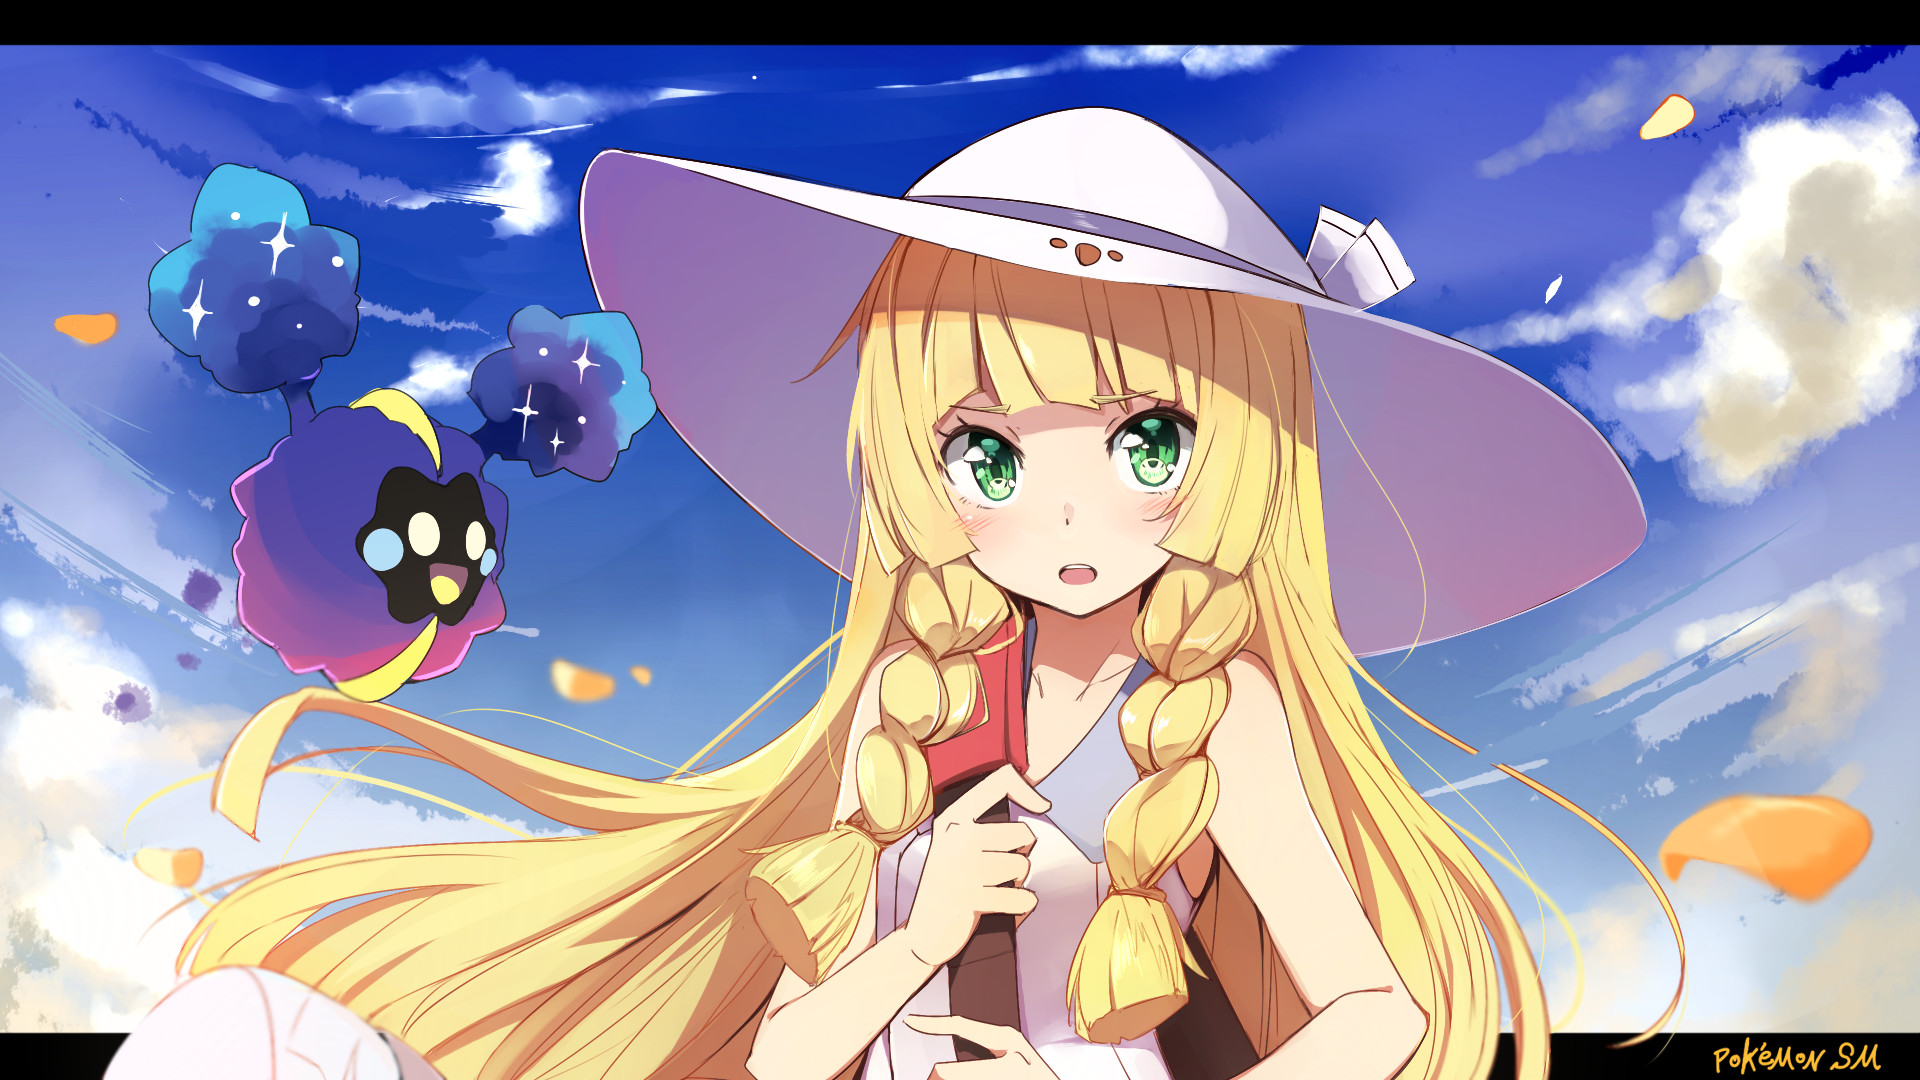 1920x1080 Video Game Pokémon Sun And Moon Lillie (Pokemon) Cosmog (Pokémon) Wallpaper